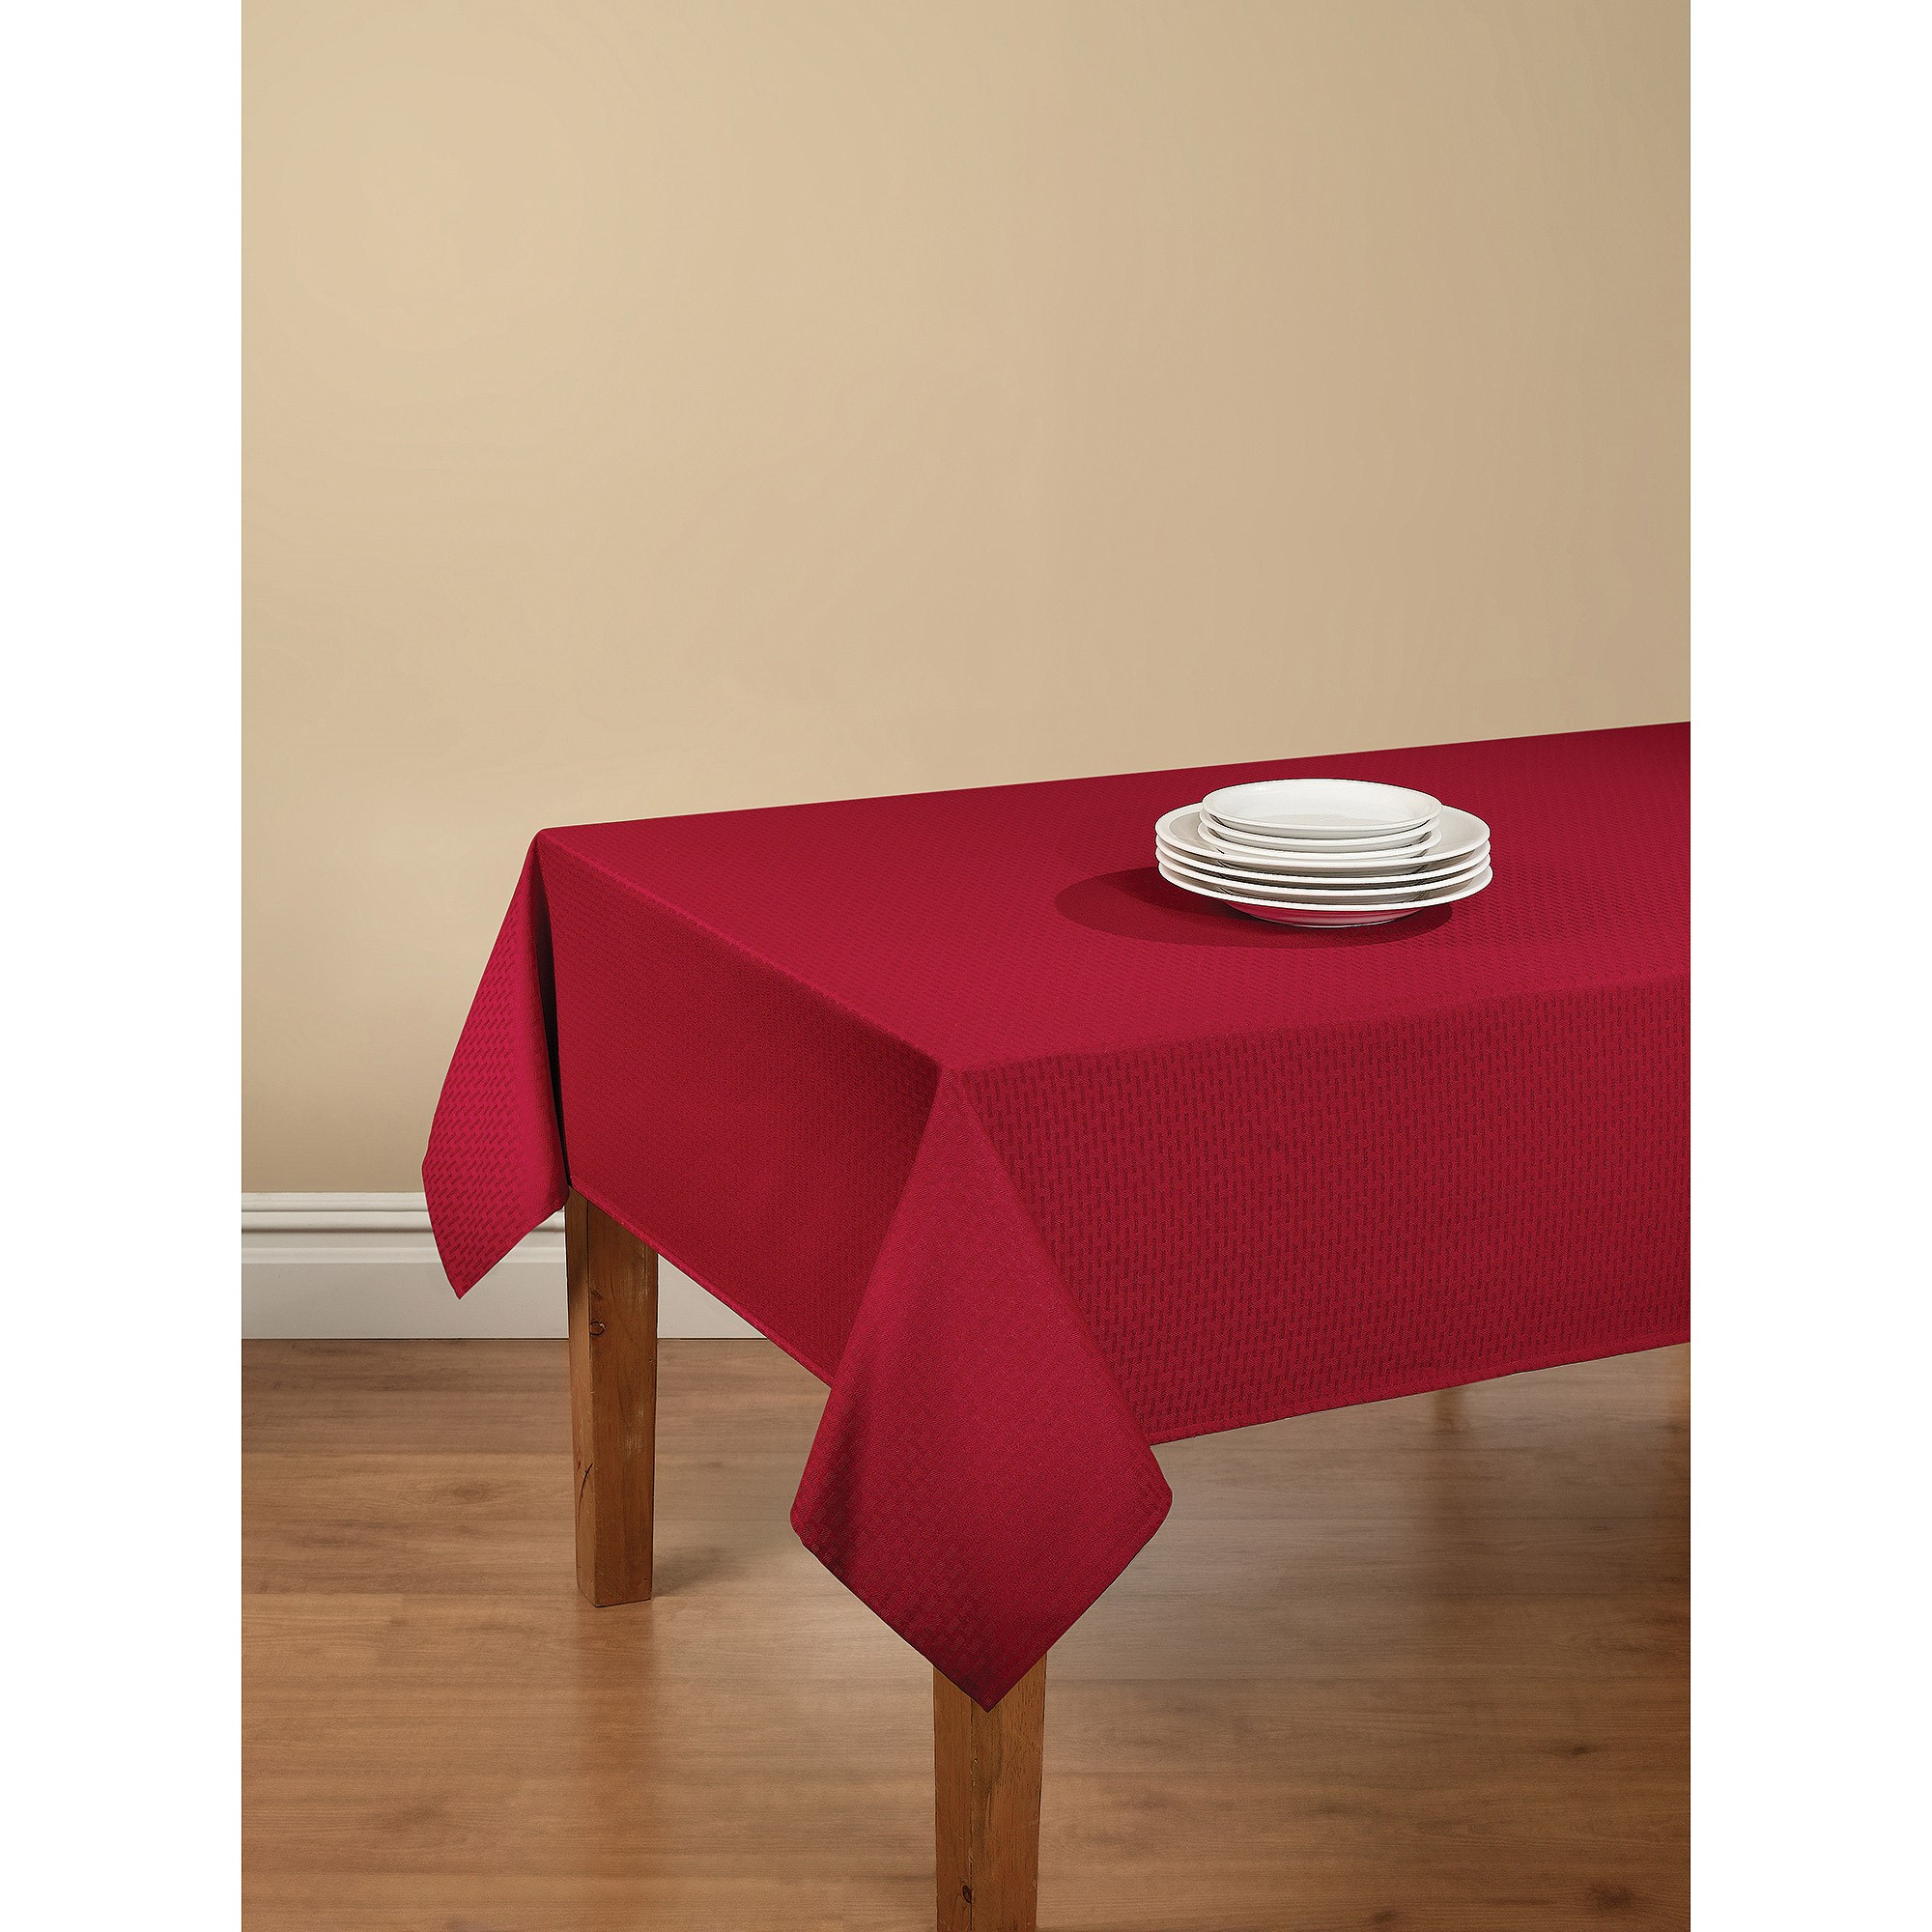 mainstays hyde fabric tablecloth red round accent table christmas placemats nice end tables unusual side nautical nursery lamp live edge brown threshold coastal bedroom decor